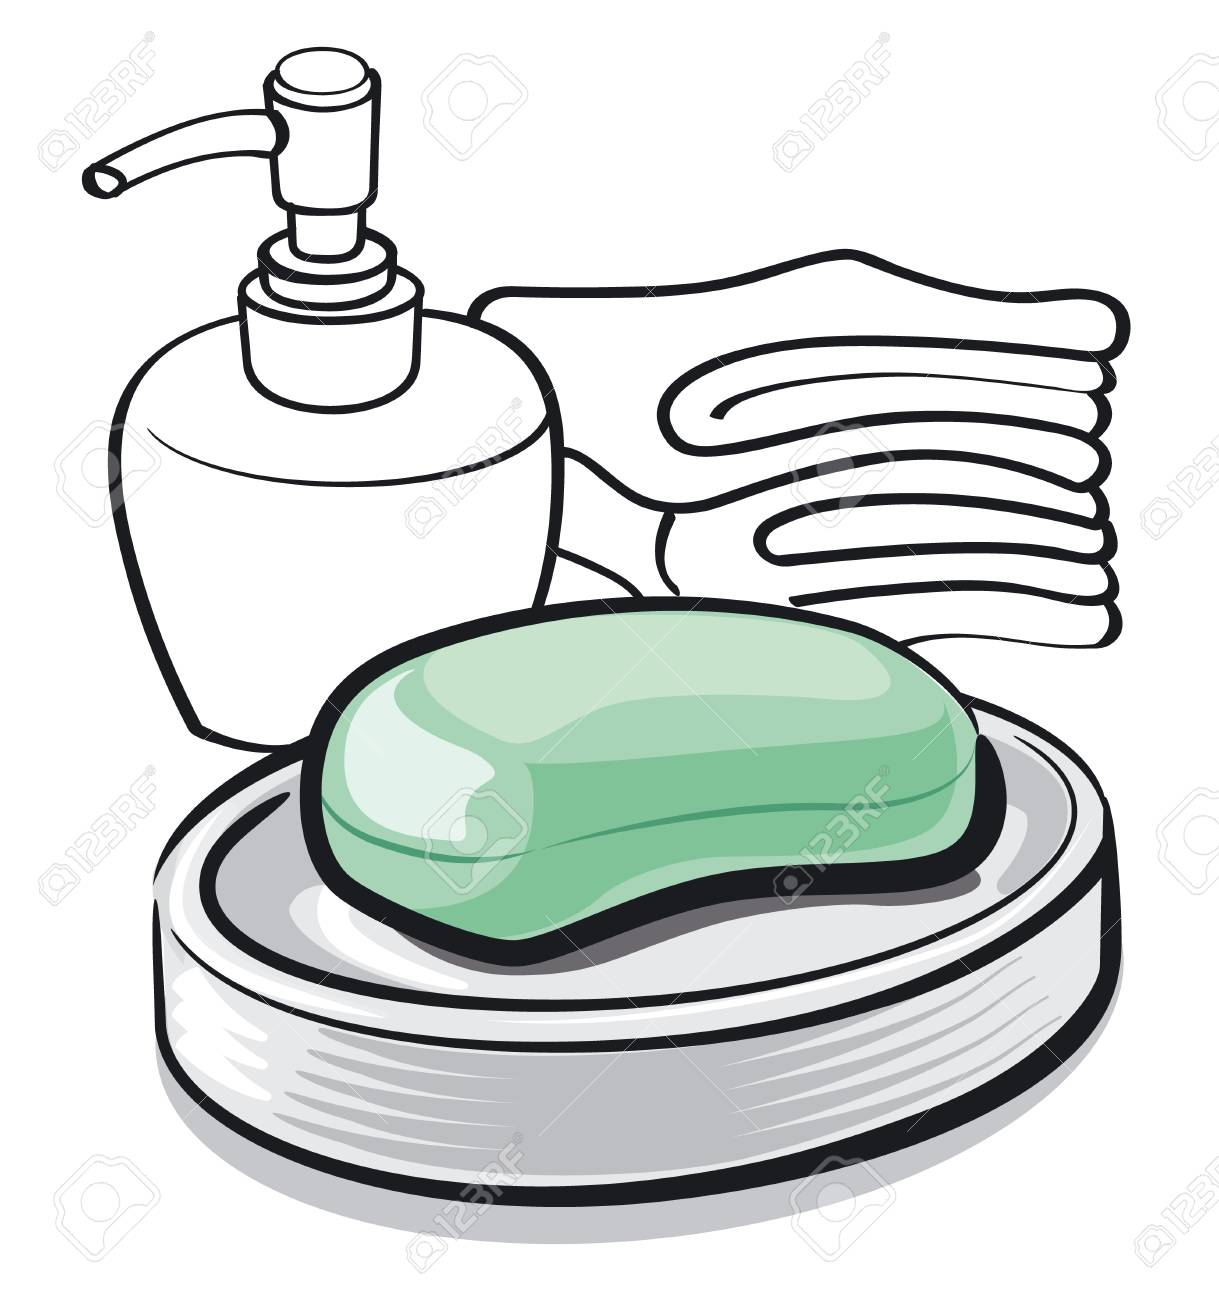 1219x1300 Illustration Of Soap Bar In Bathroom Royalty Free Cliparts